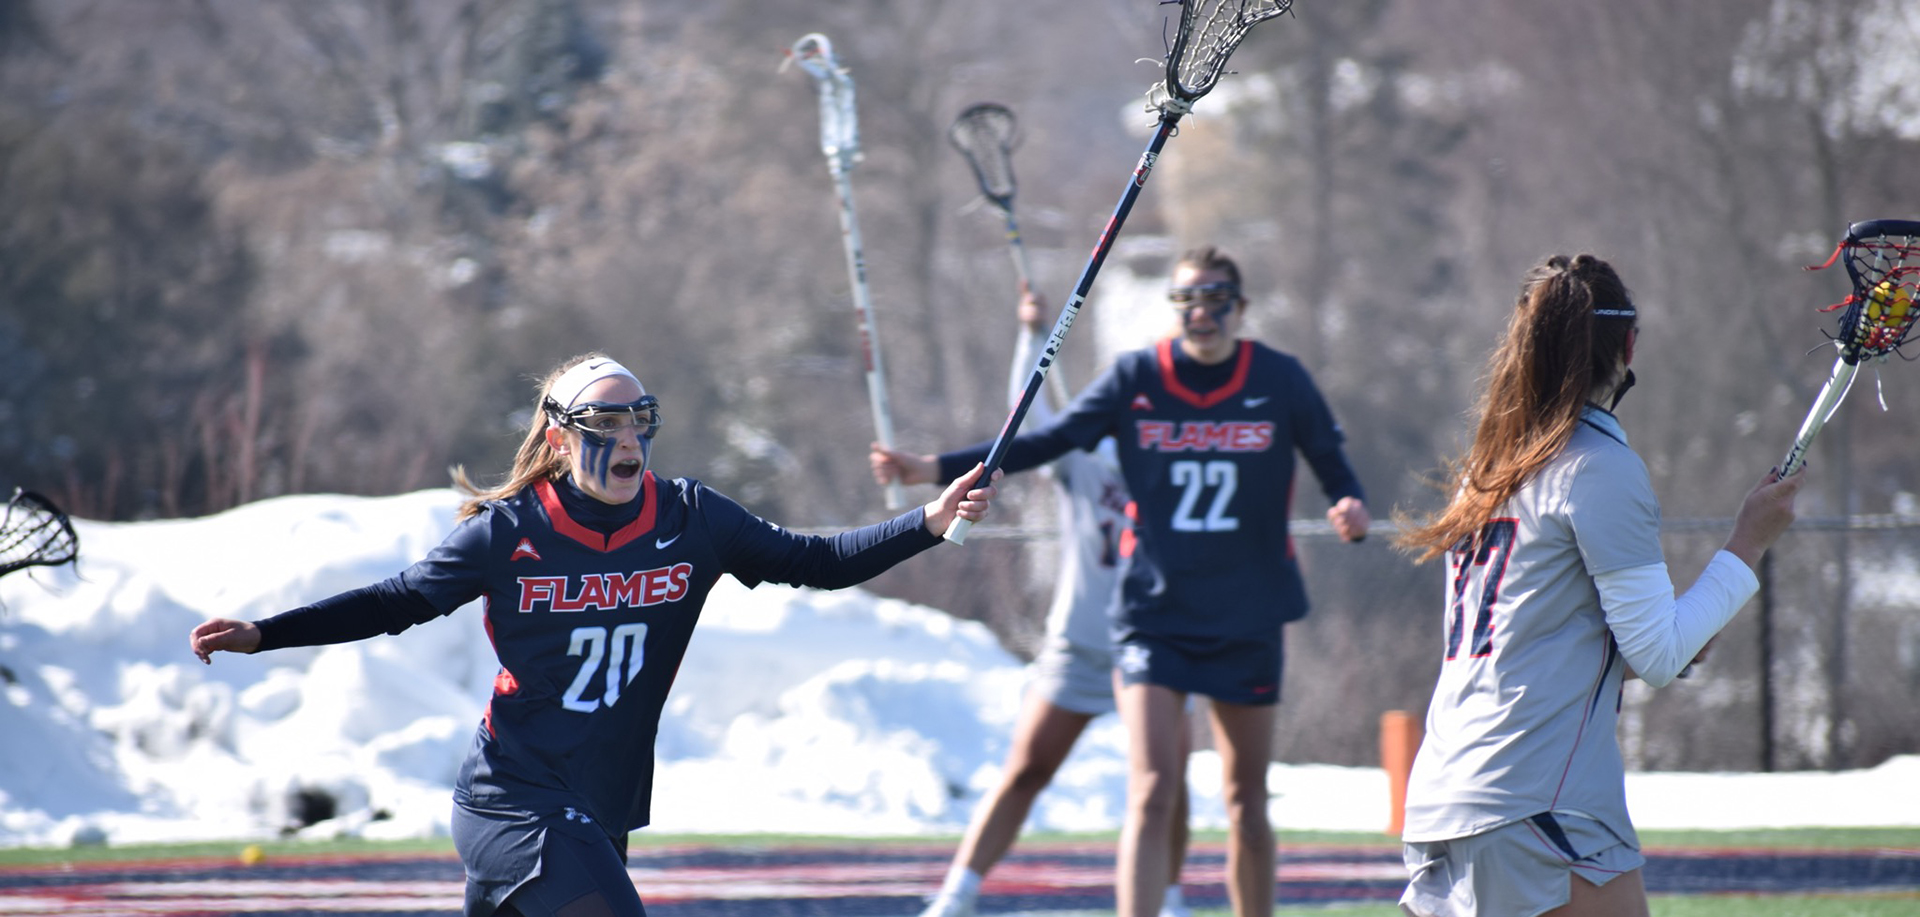 Toscano had three goals for Liberty at Robert Morris.